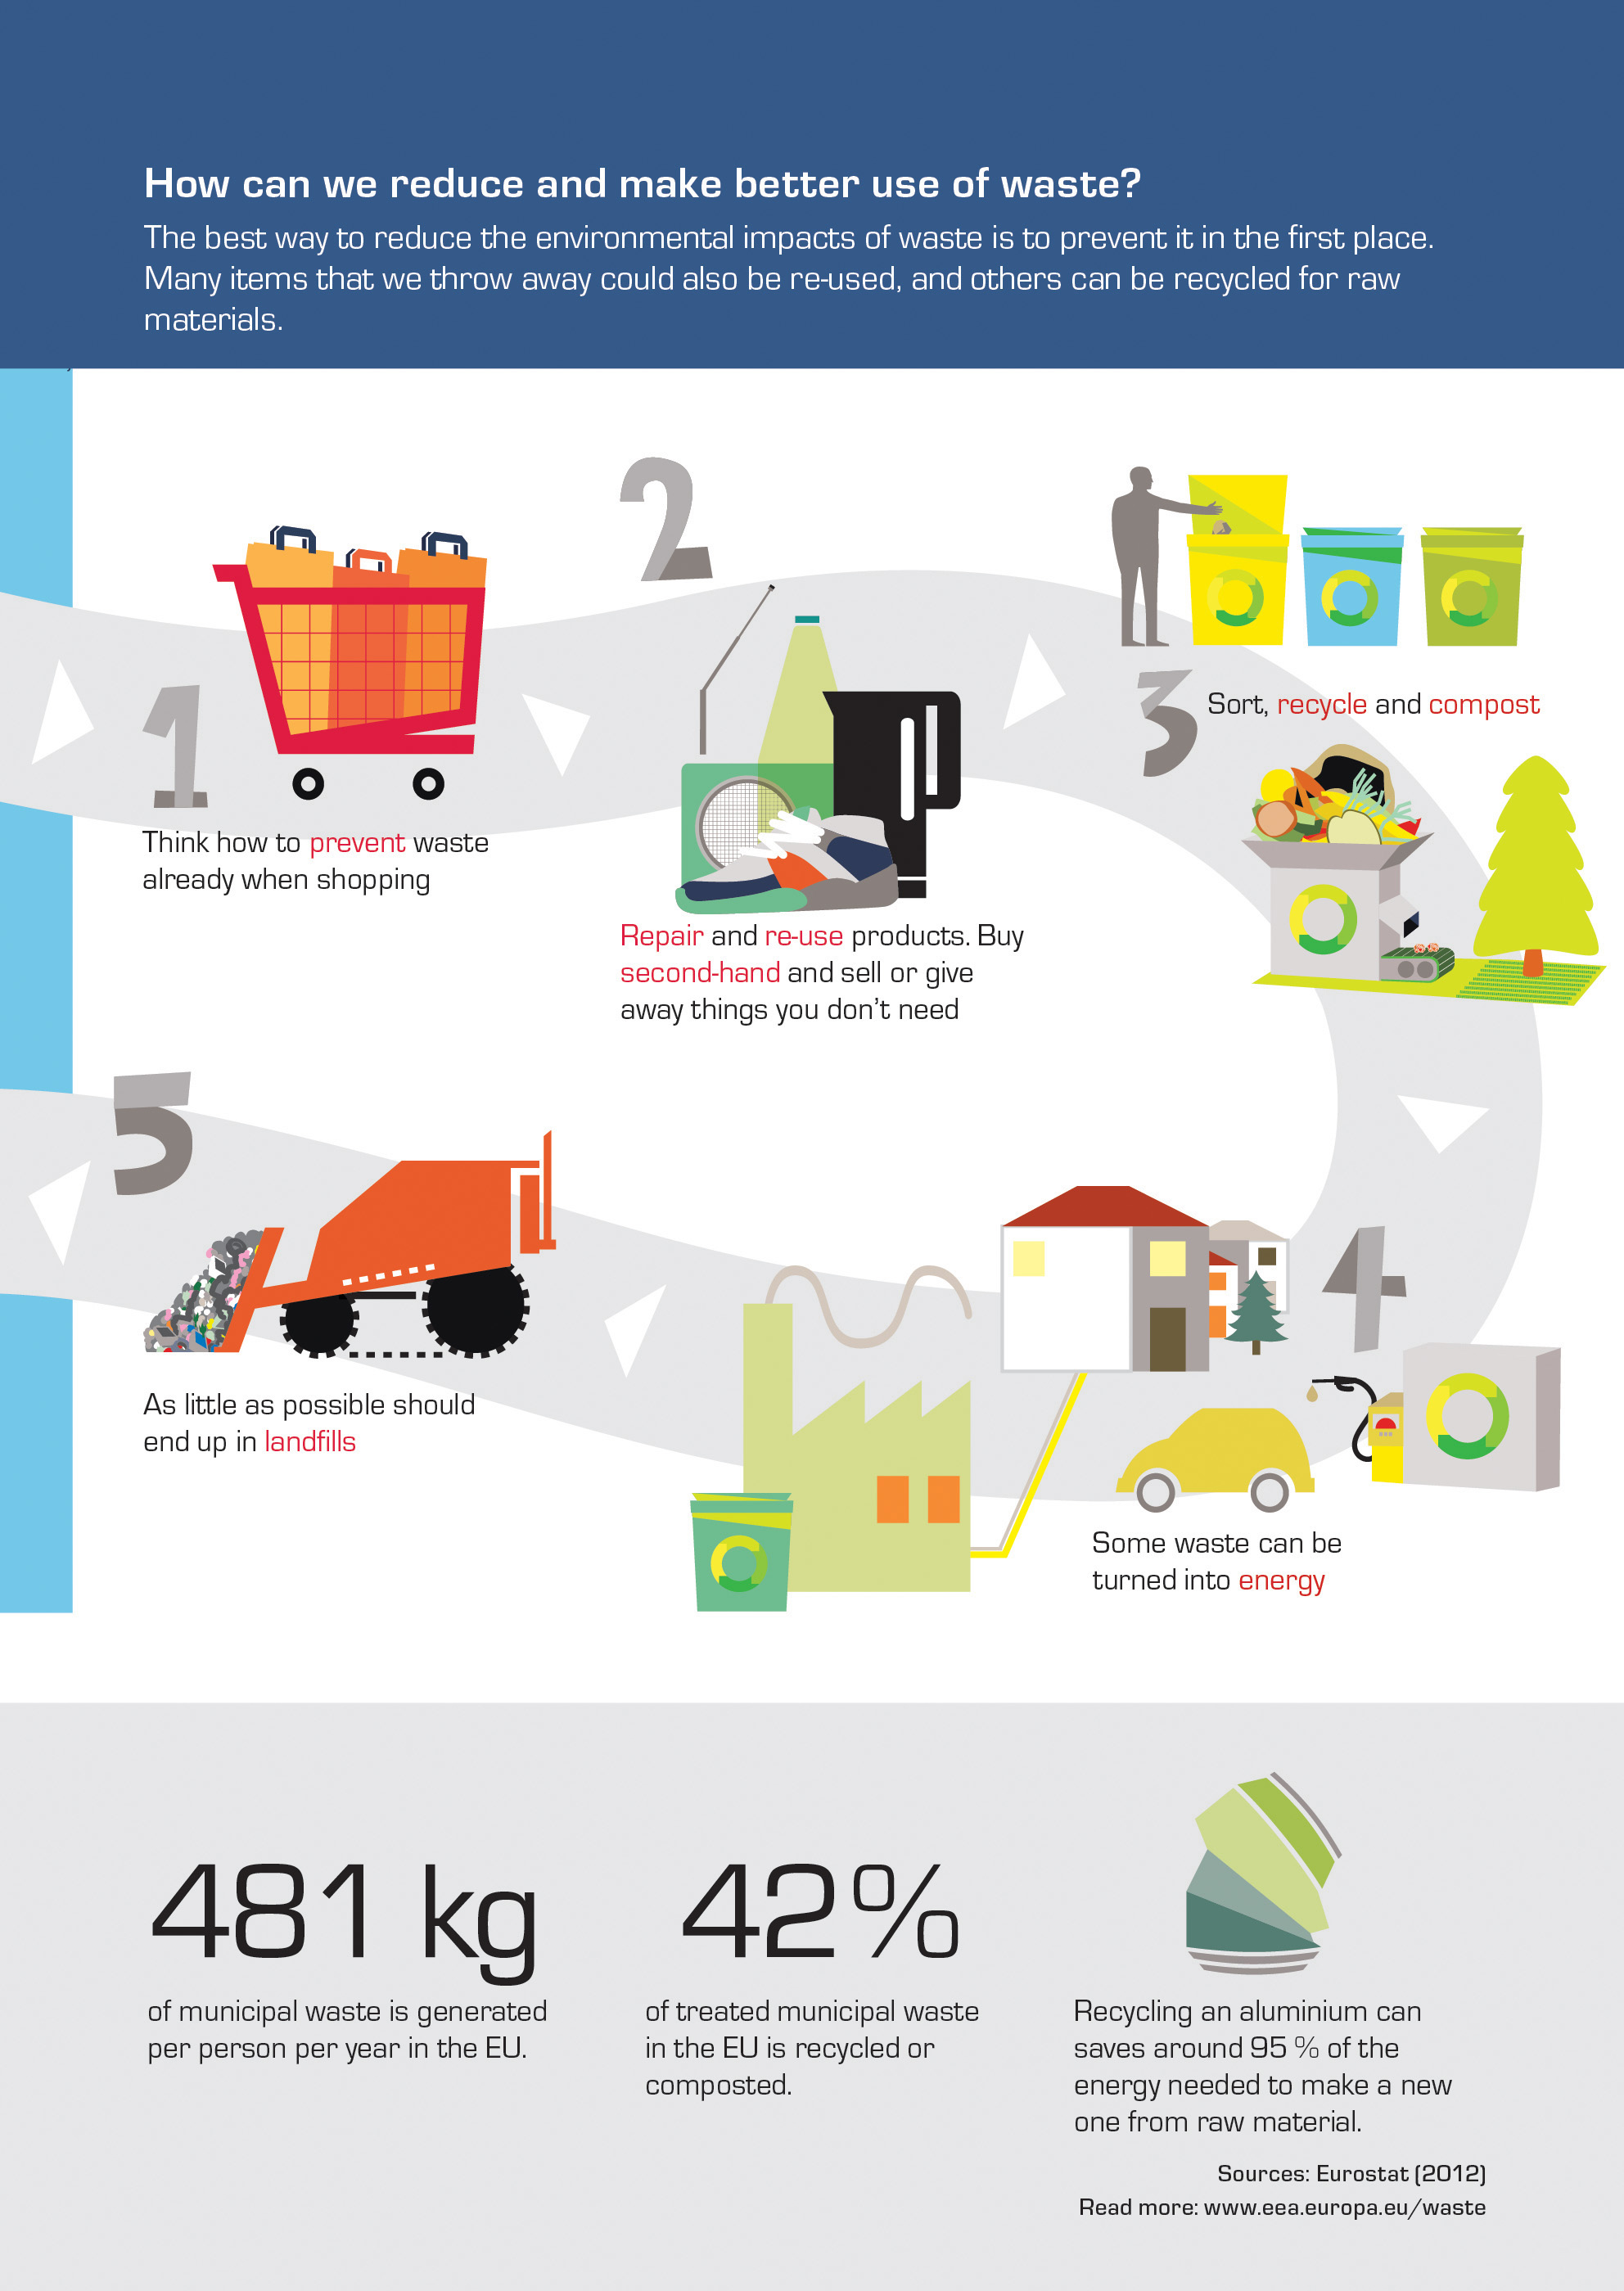 How can we reduce and make better use of waste?